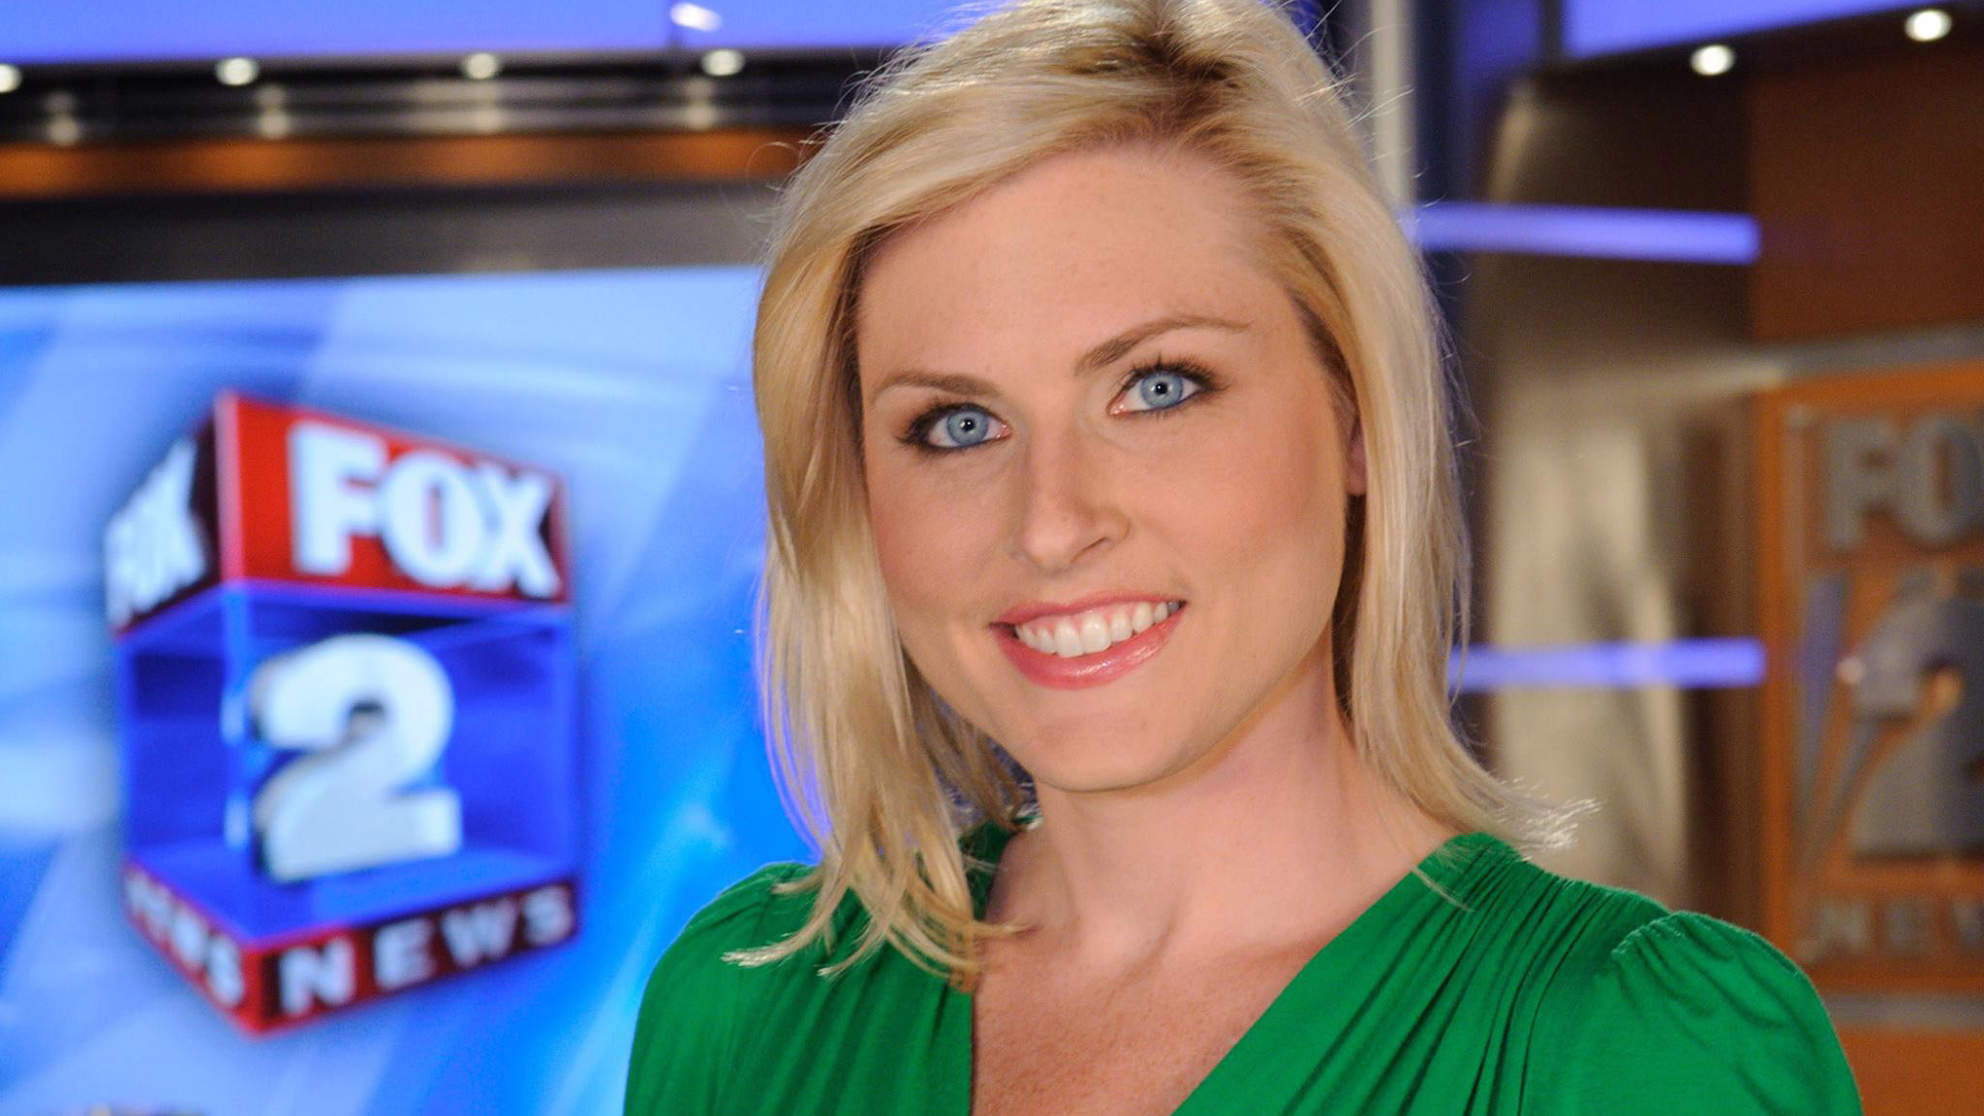 Family of Meteorologist Who Died by Suicide After Eye Surgery Complications Speaks Out